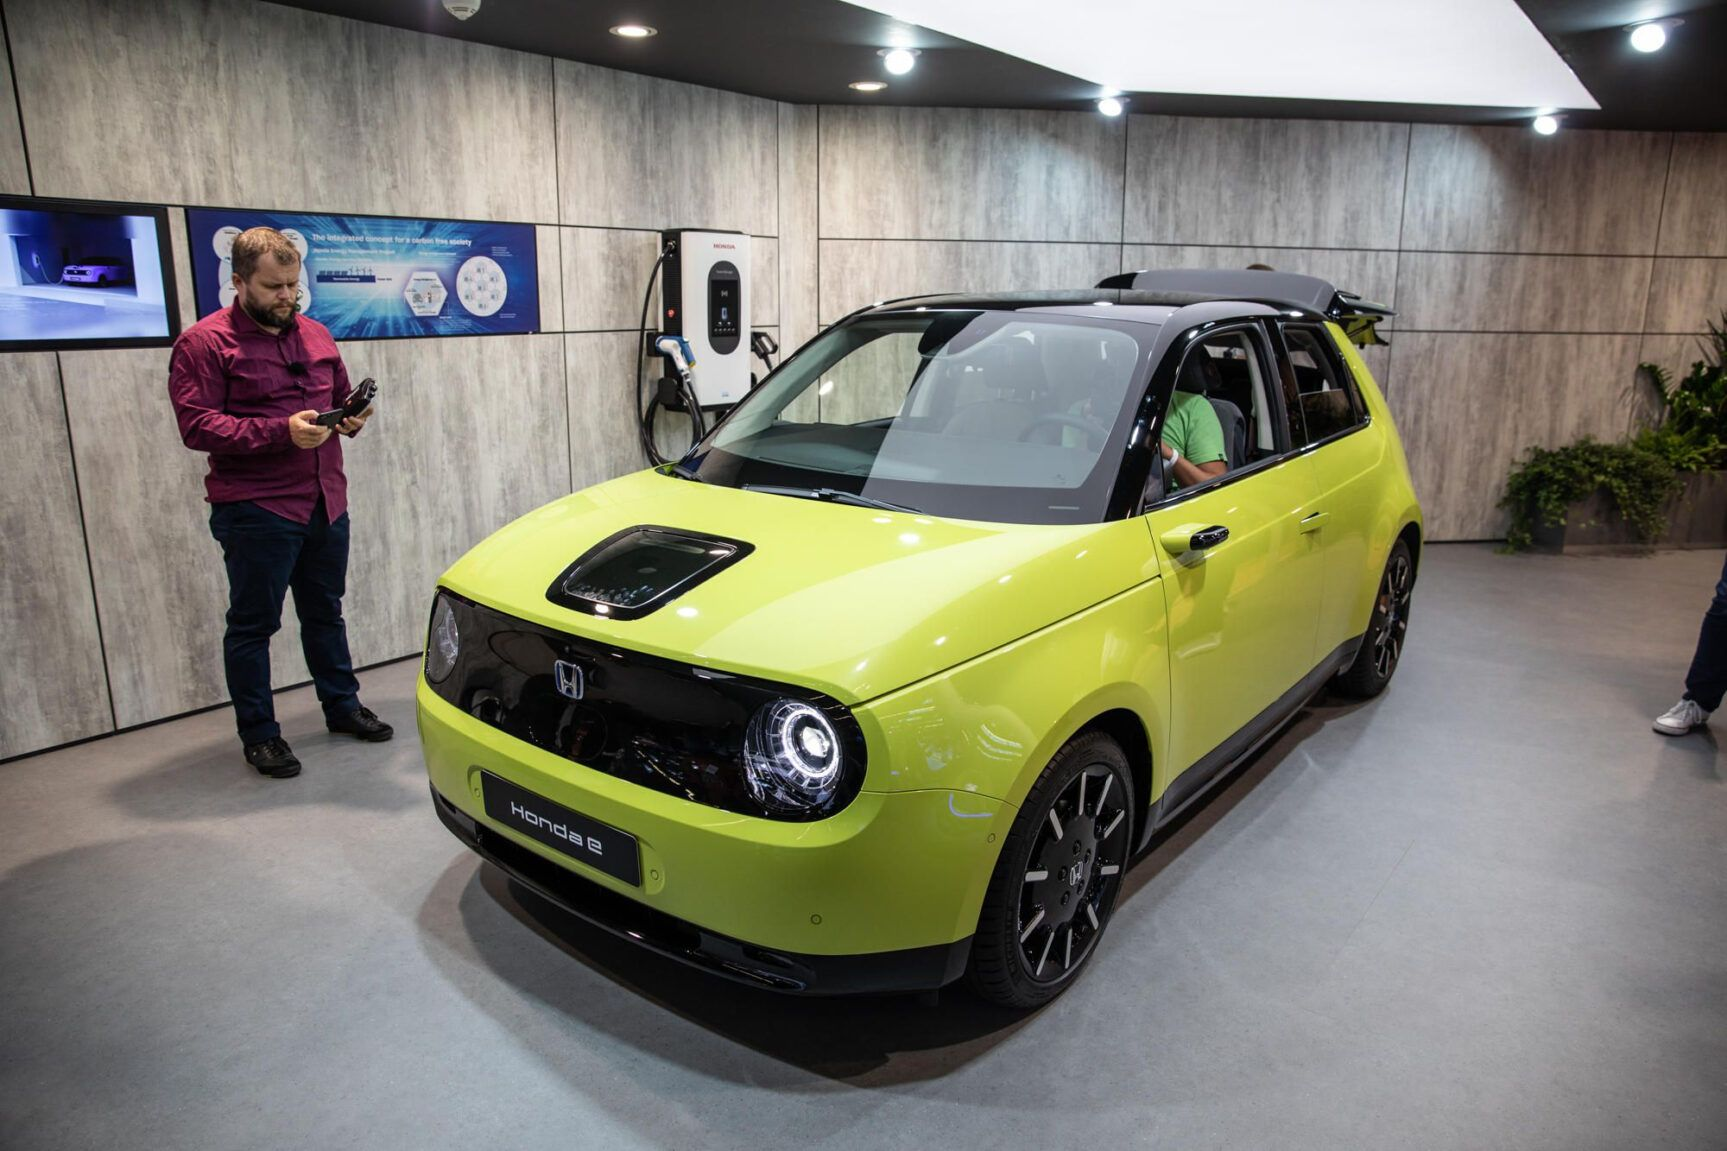 Honda E Is The First Production Battery Electric Vehicle Introduced By Honda In Europe And Is The Next Action Towards The Brand Name S Electric Vision For 100